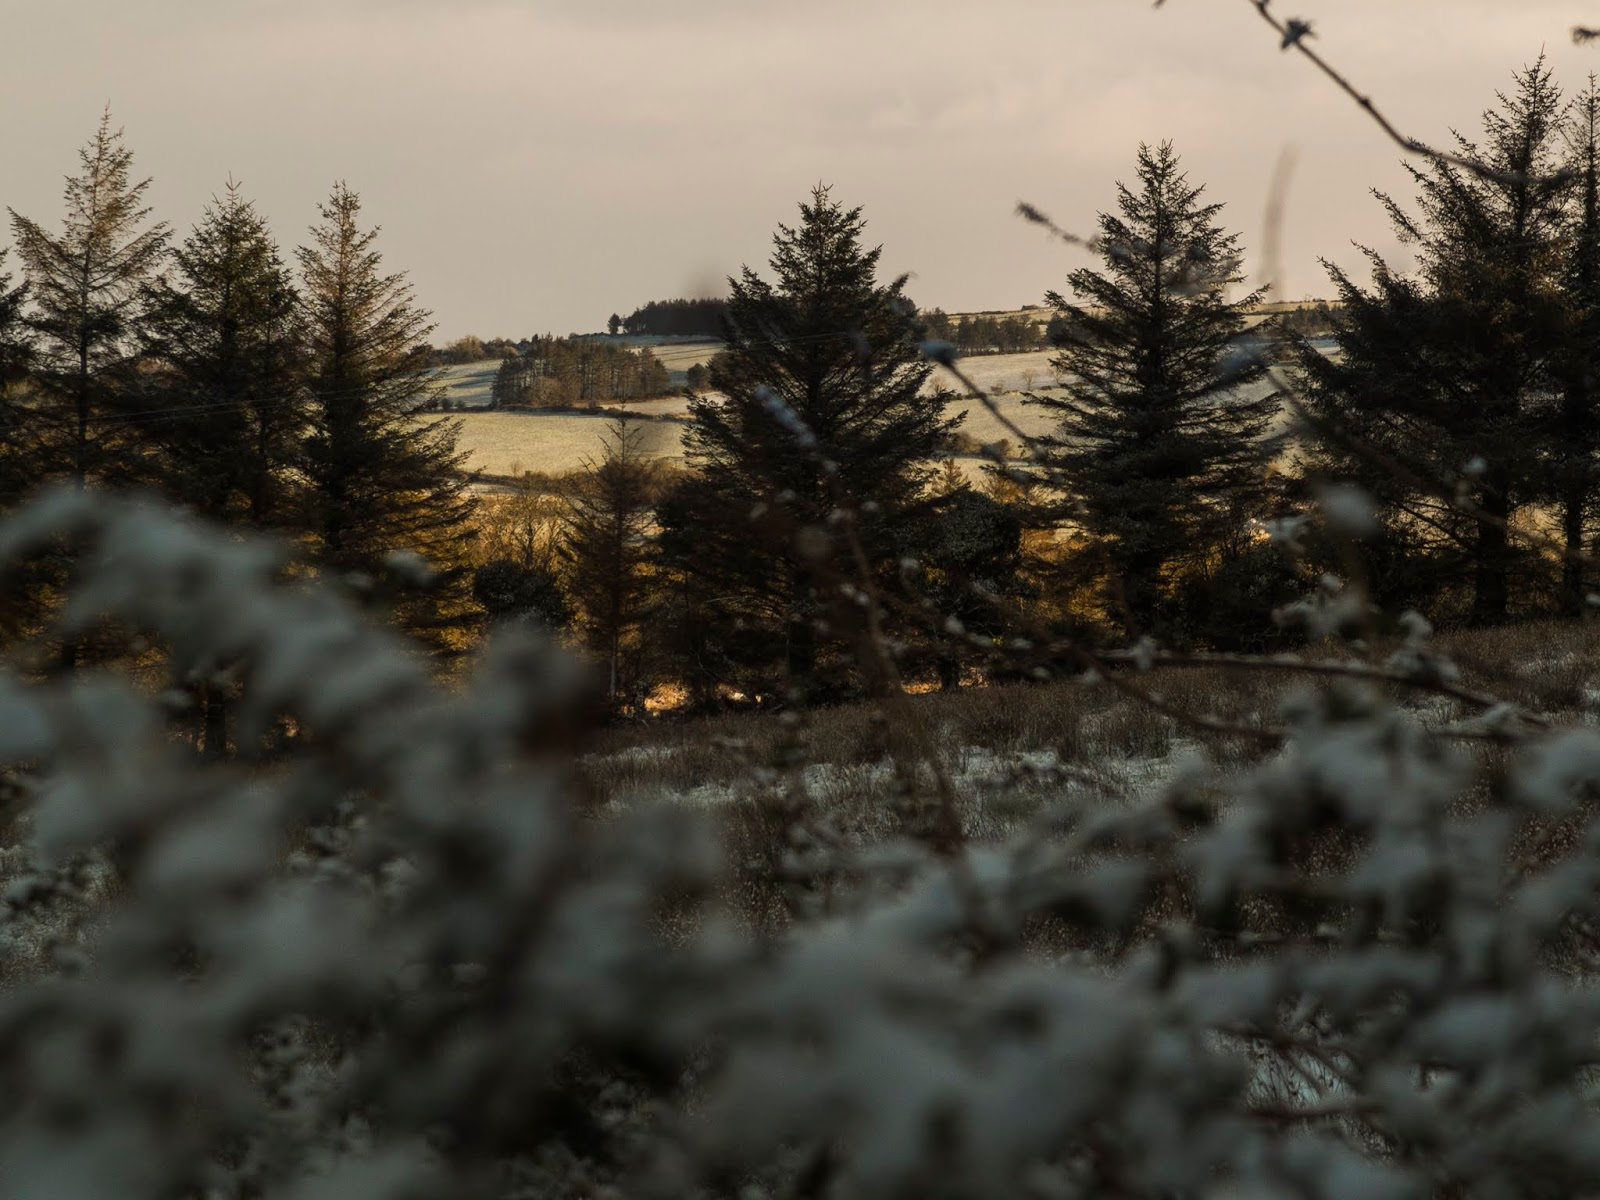 Sunset on a hillside seen though snowy branches and mature conifer trees.